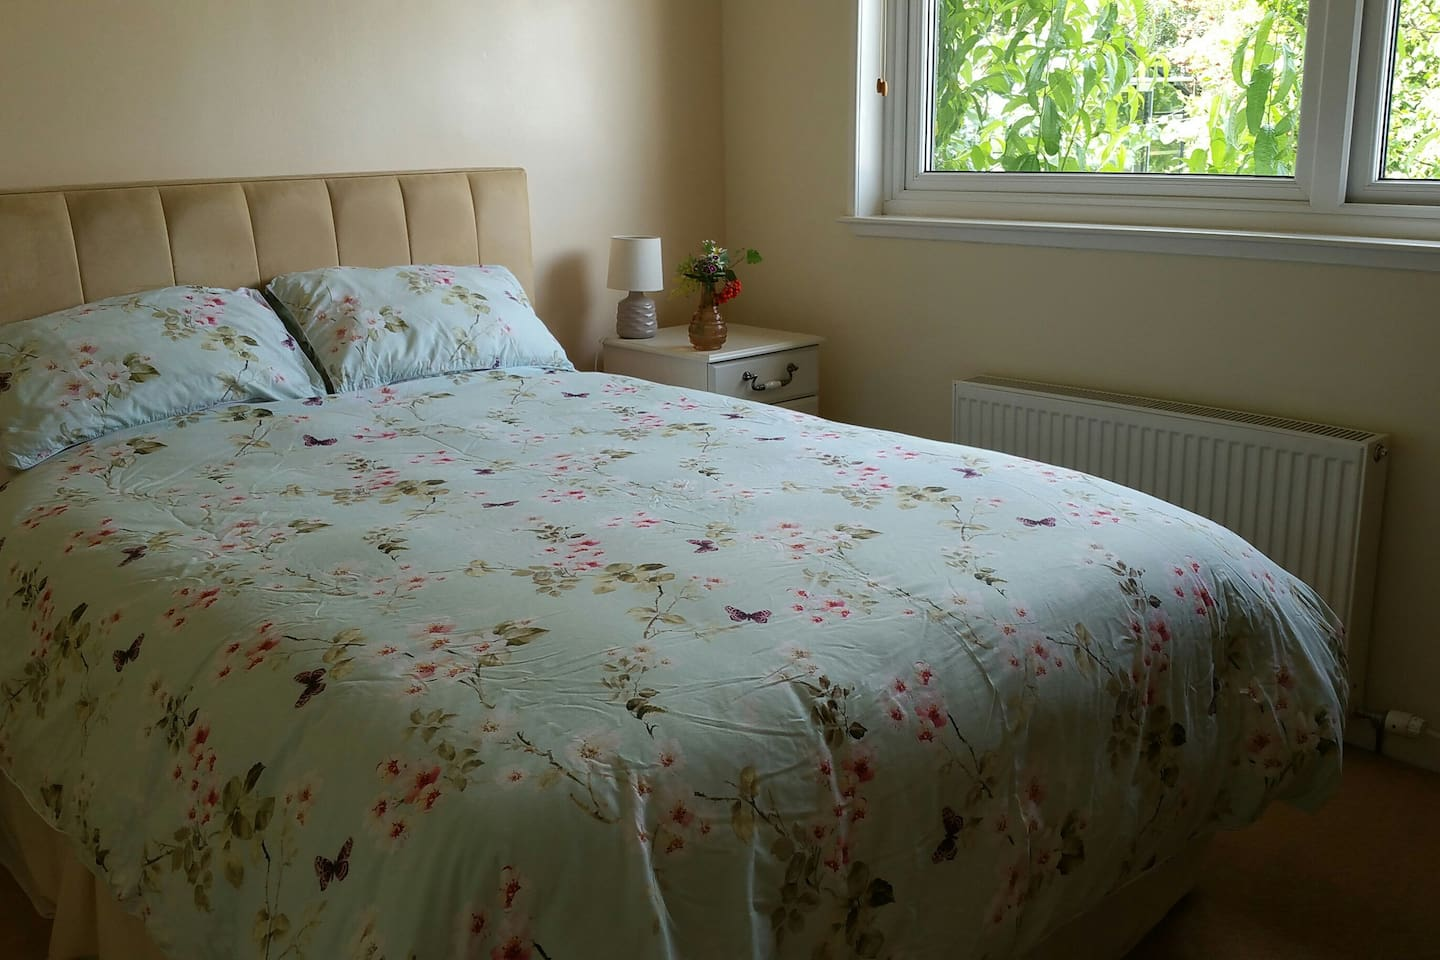 Our kingsize Orchard Room with the peach tree outside the window...